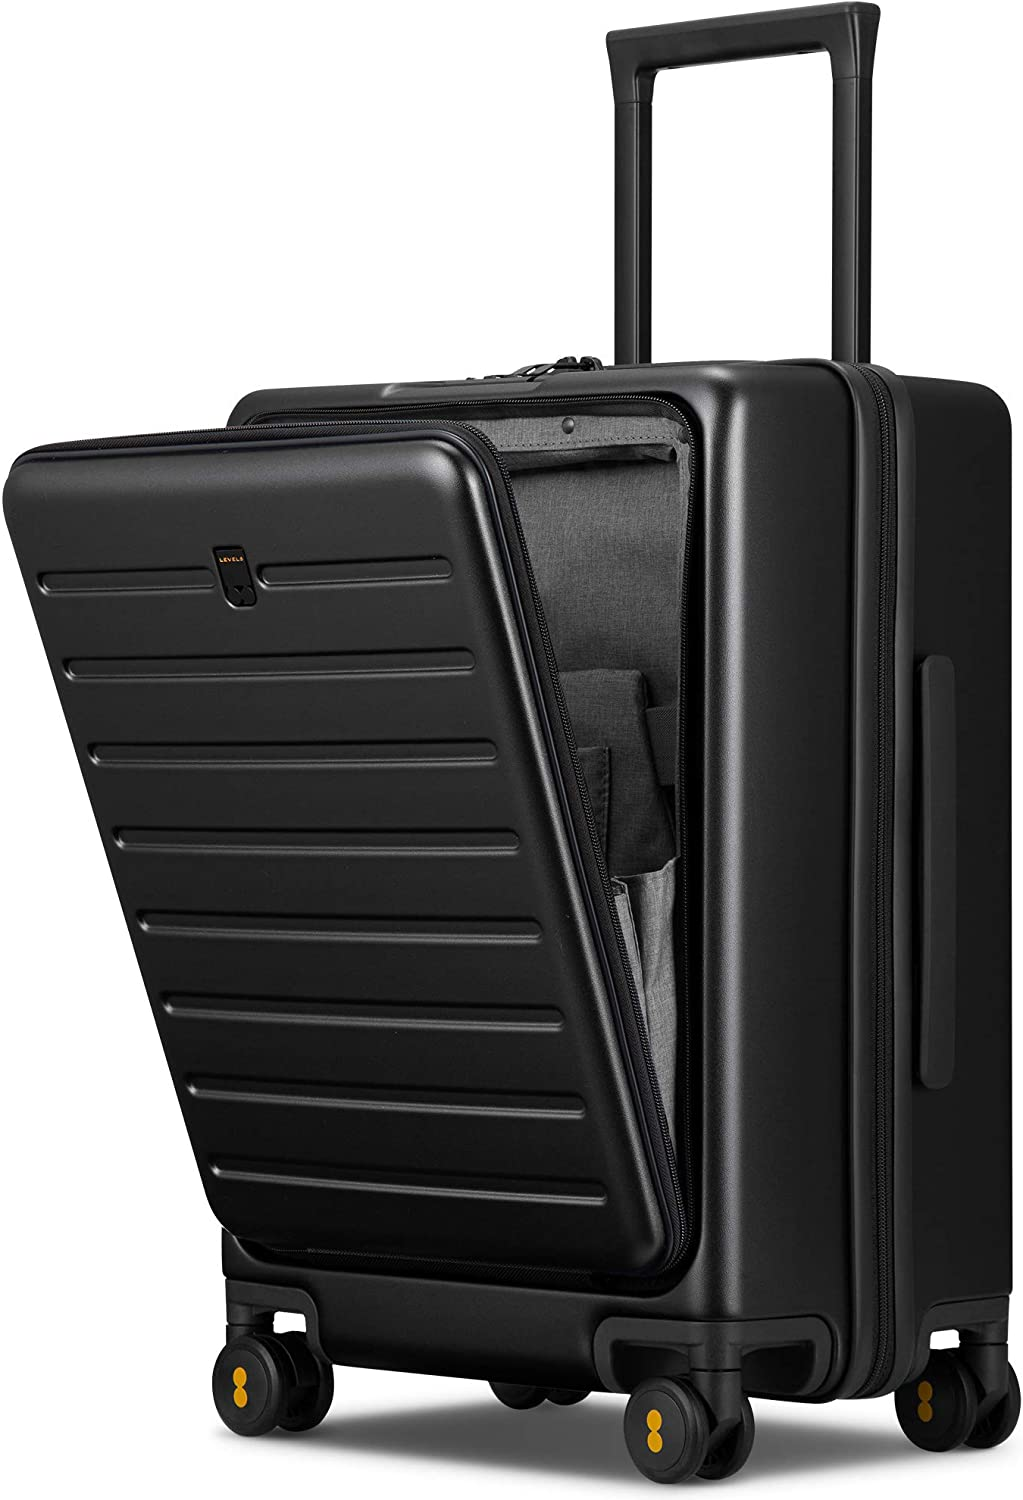 LEVEL8 Road Runner Carry On Luggage, 20-Inch Hardside Suitcase, Spinner Luggage with Front Pocket, Double TSA Locks - Black